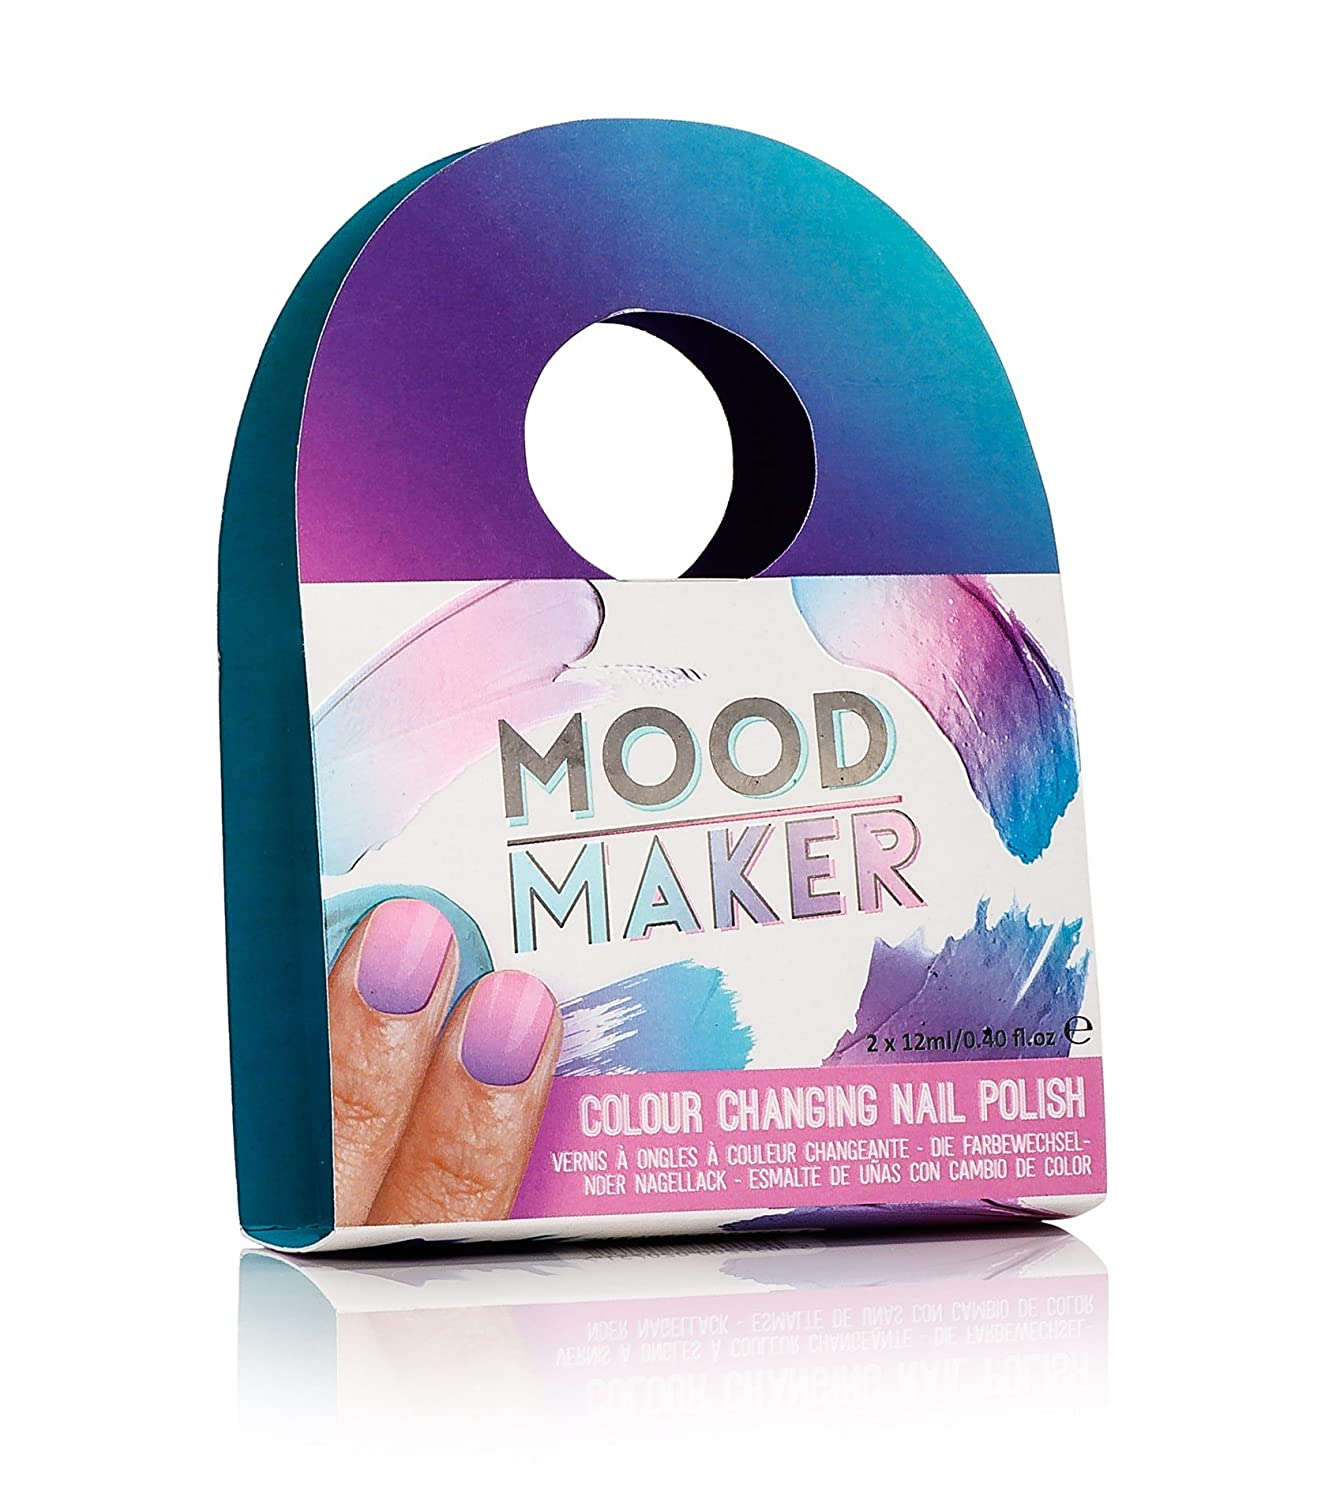 Mood Maker Colour Changing Nail Polish Purple: Amazon.co.uk: Beauty